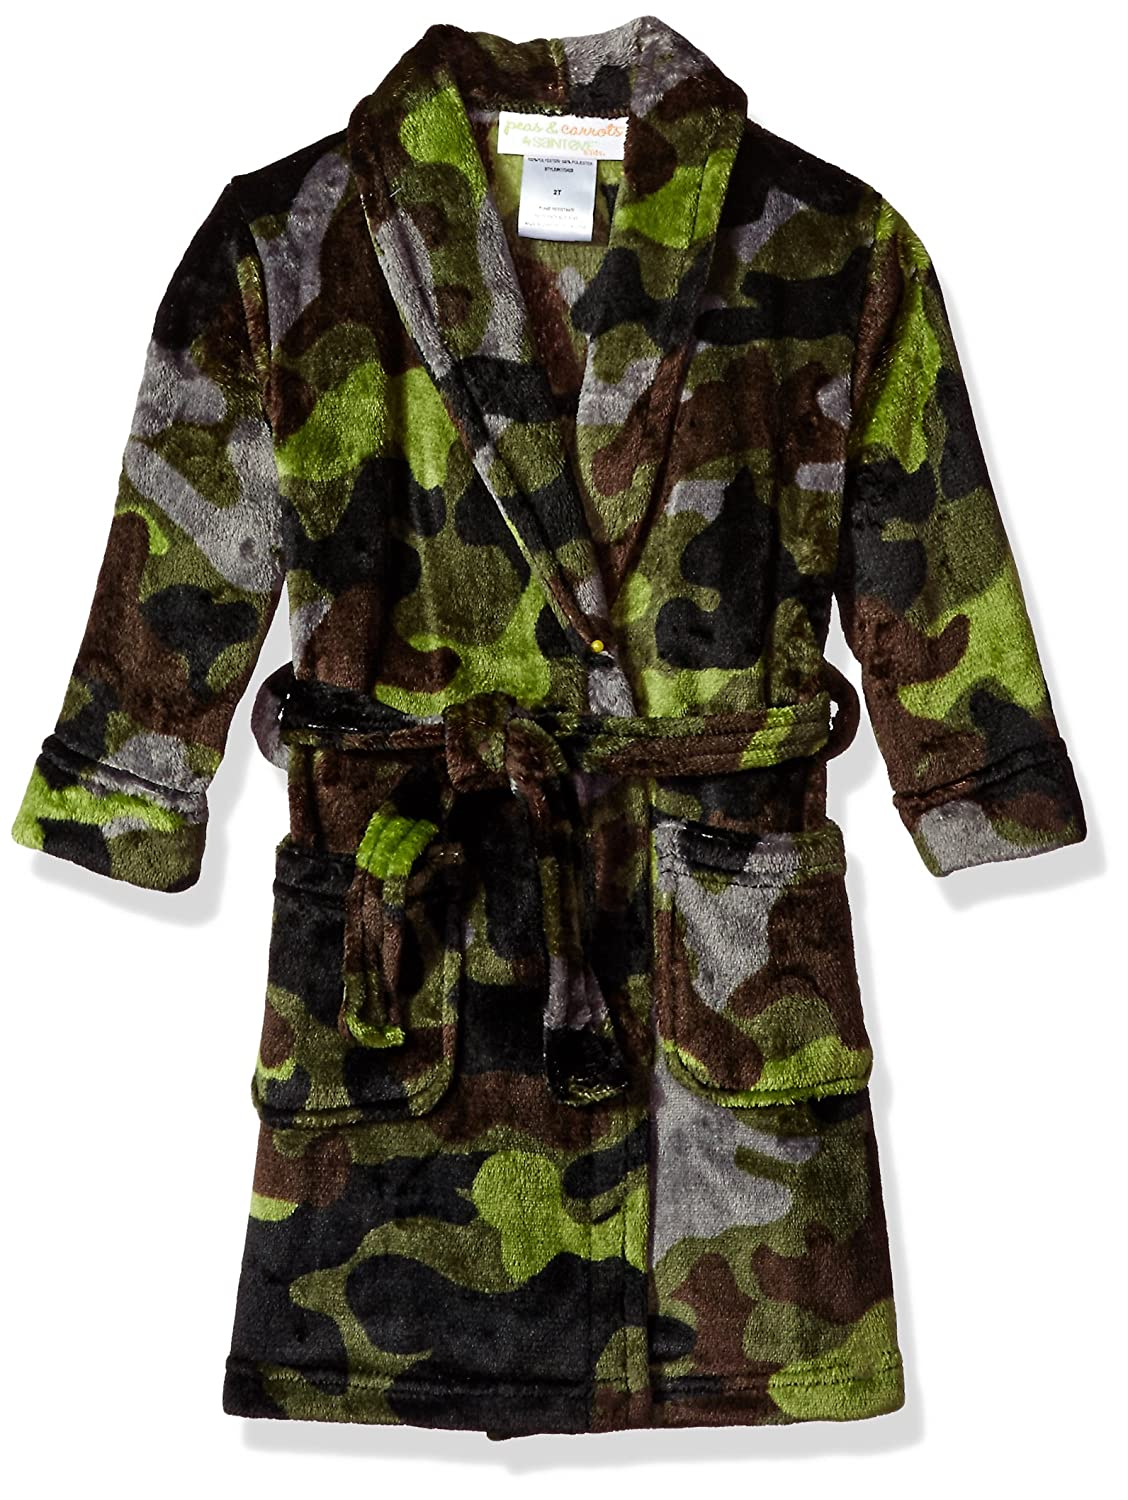 Peas & Carrots Boys' Camo Velvet Fleece Robe K172423